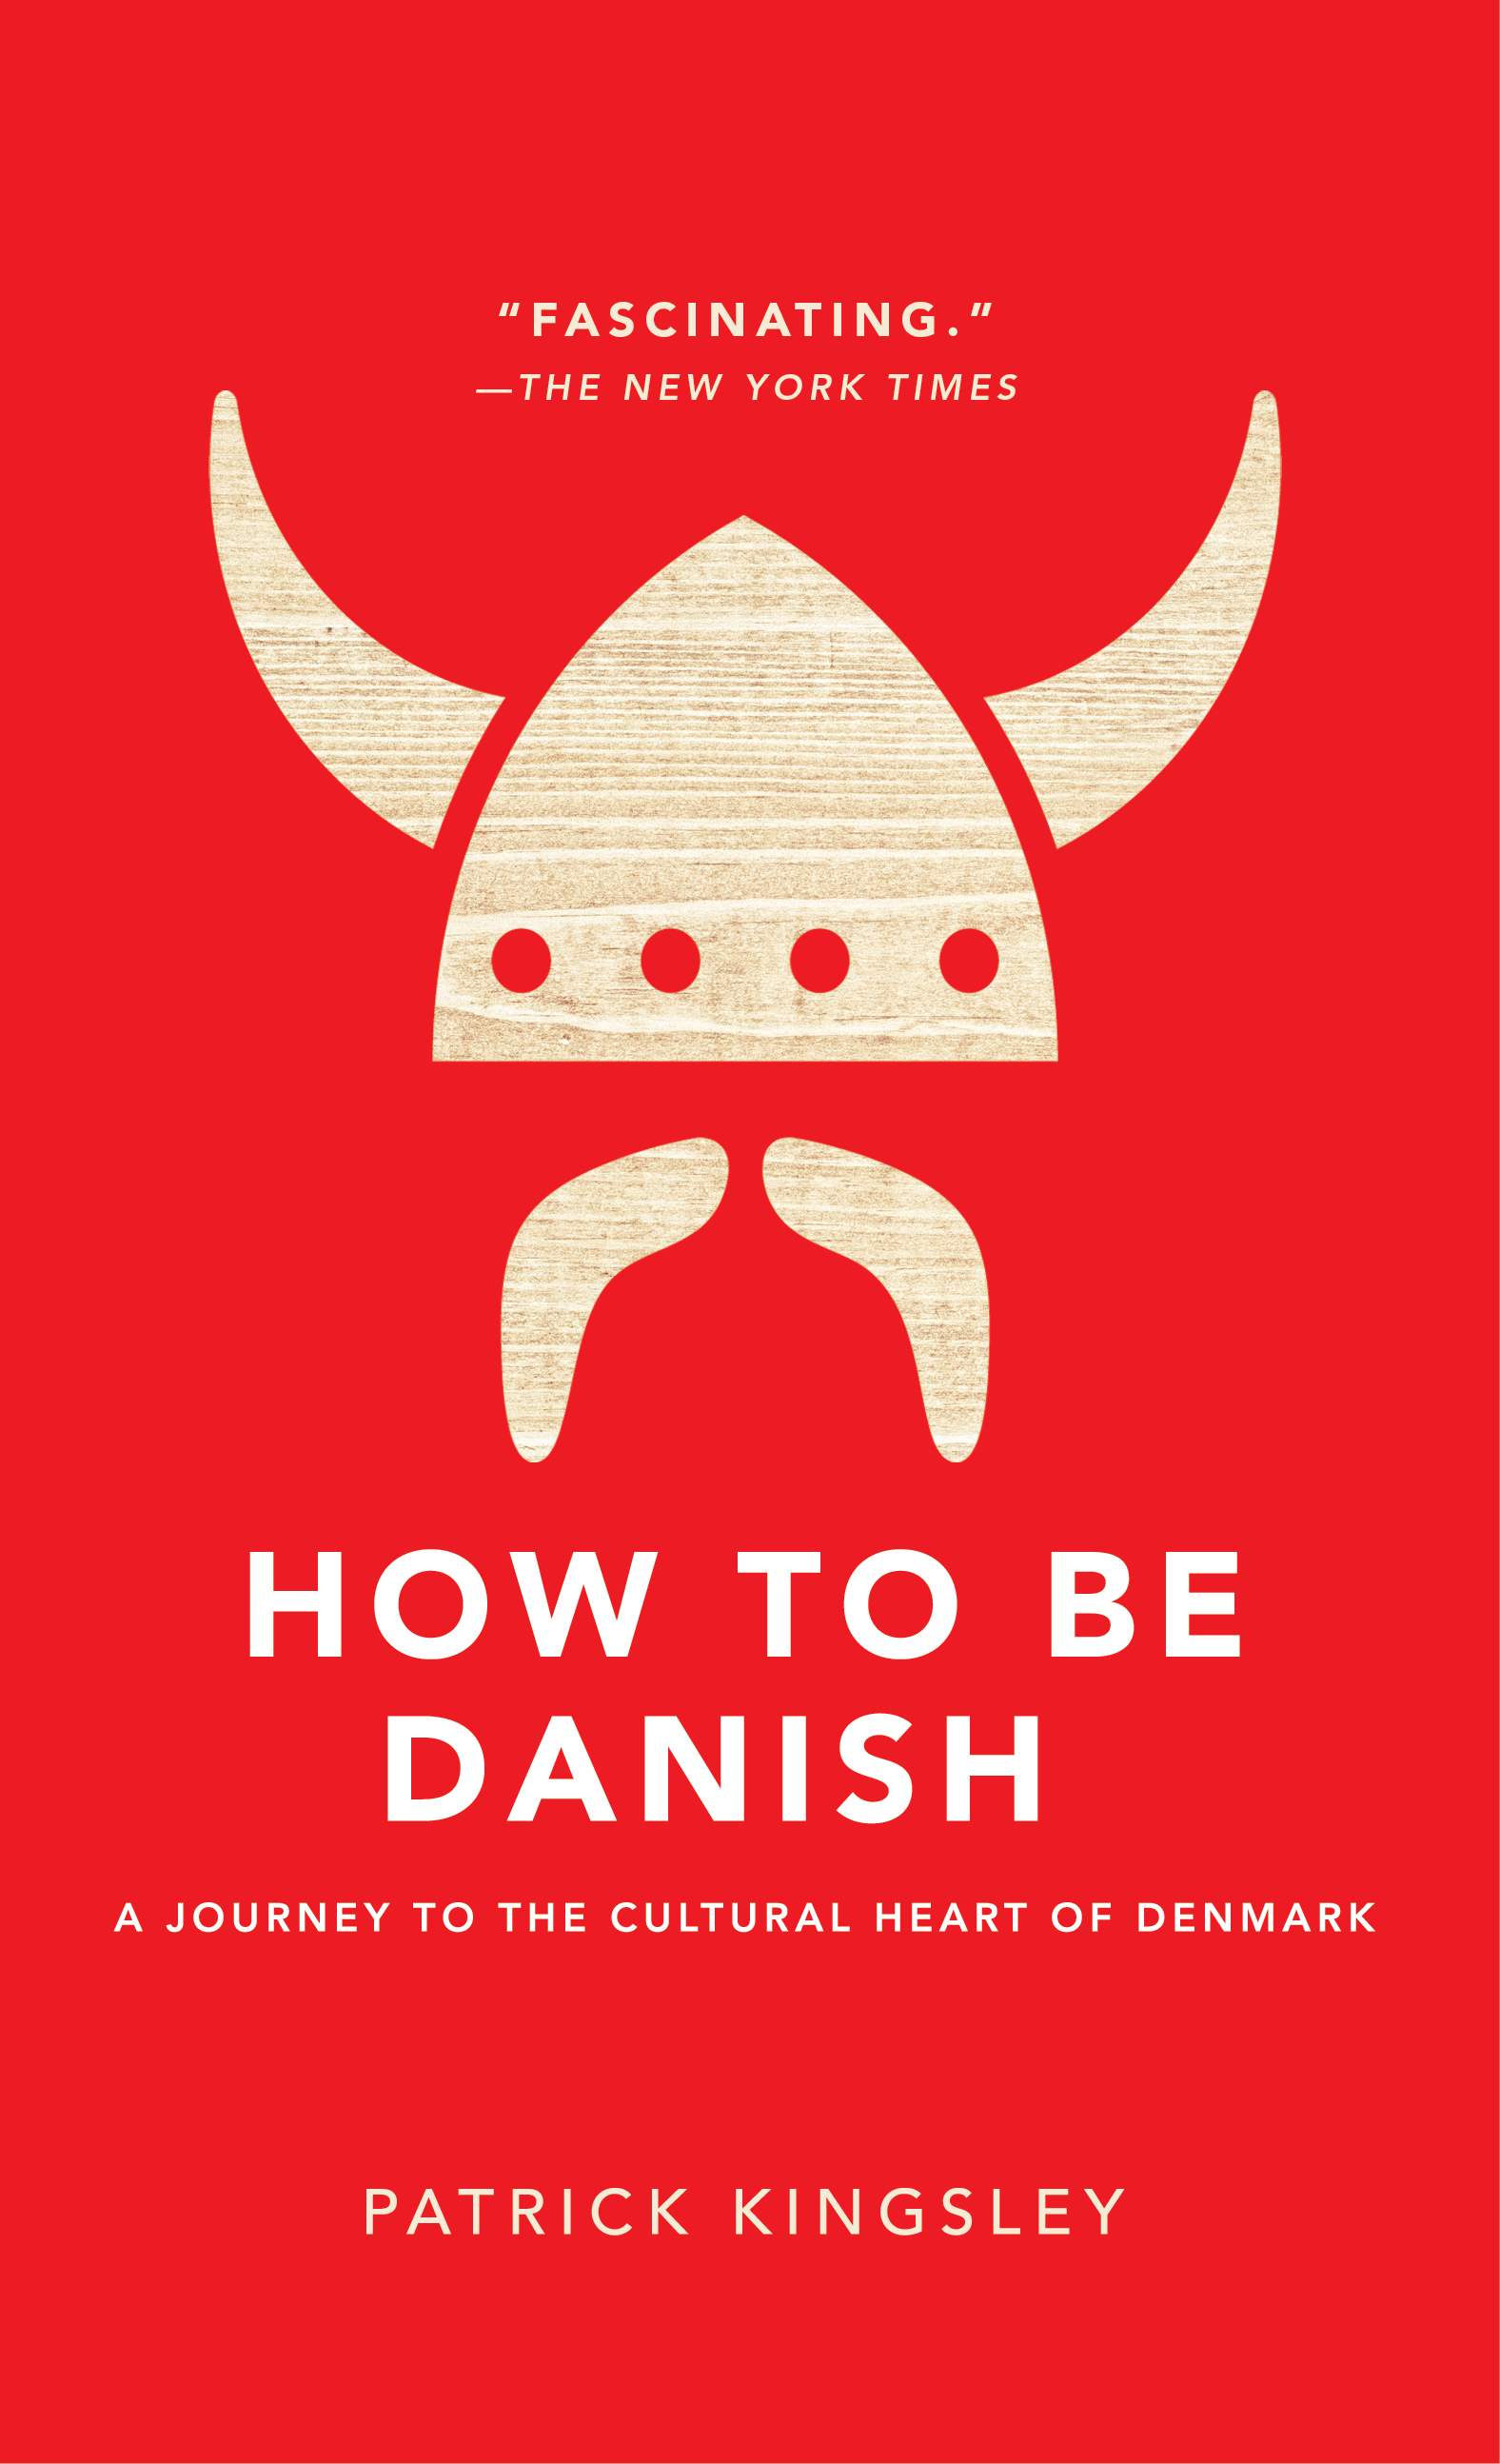 How-to-be-danish-9781476755489_hr